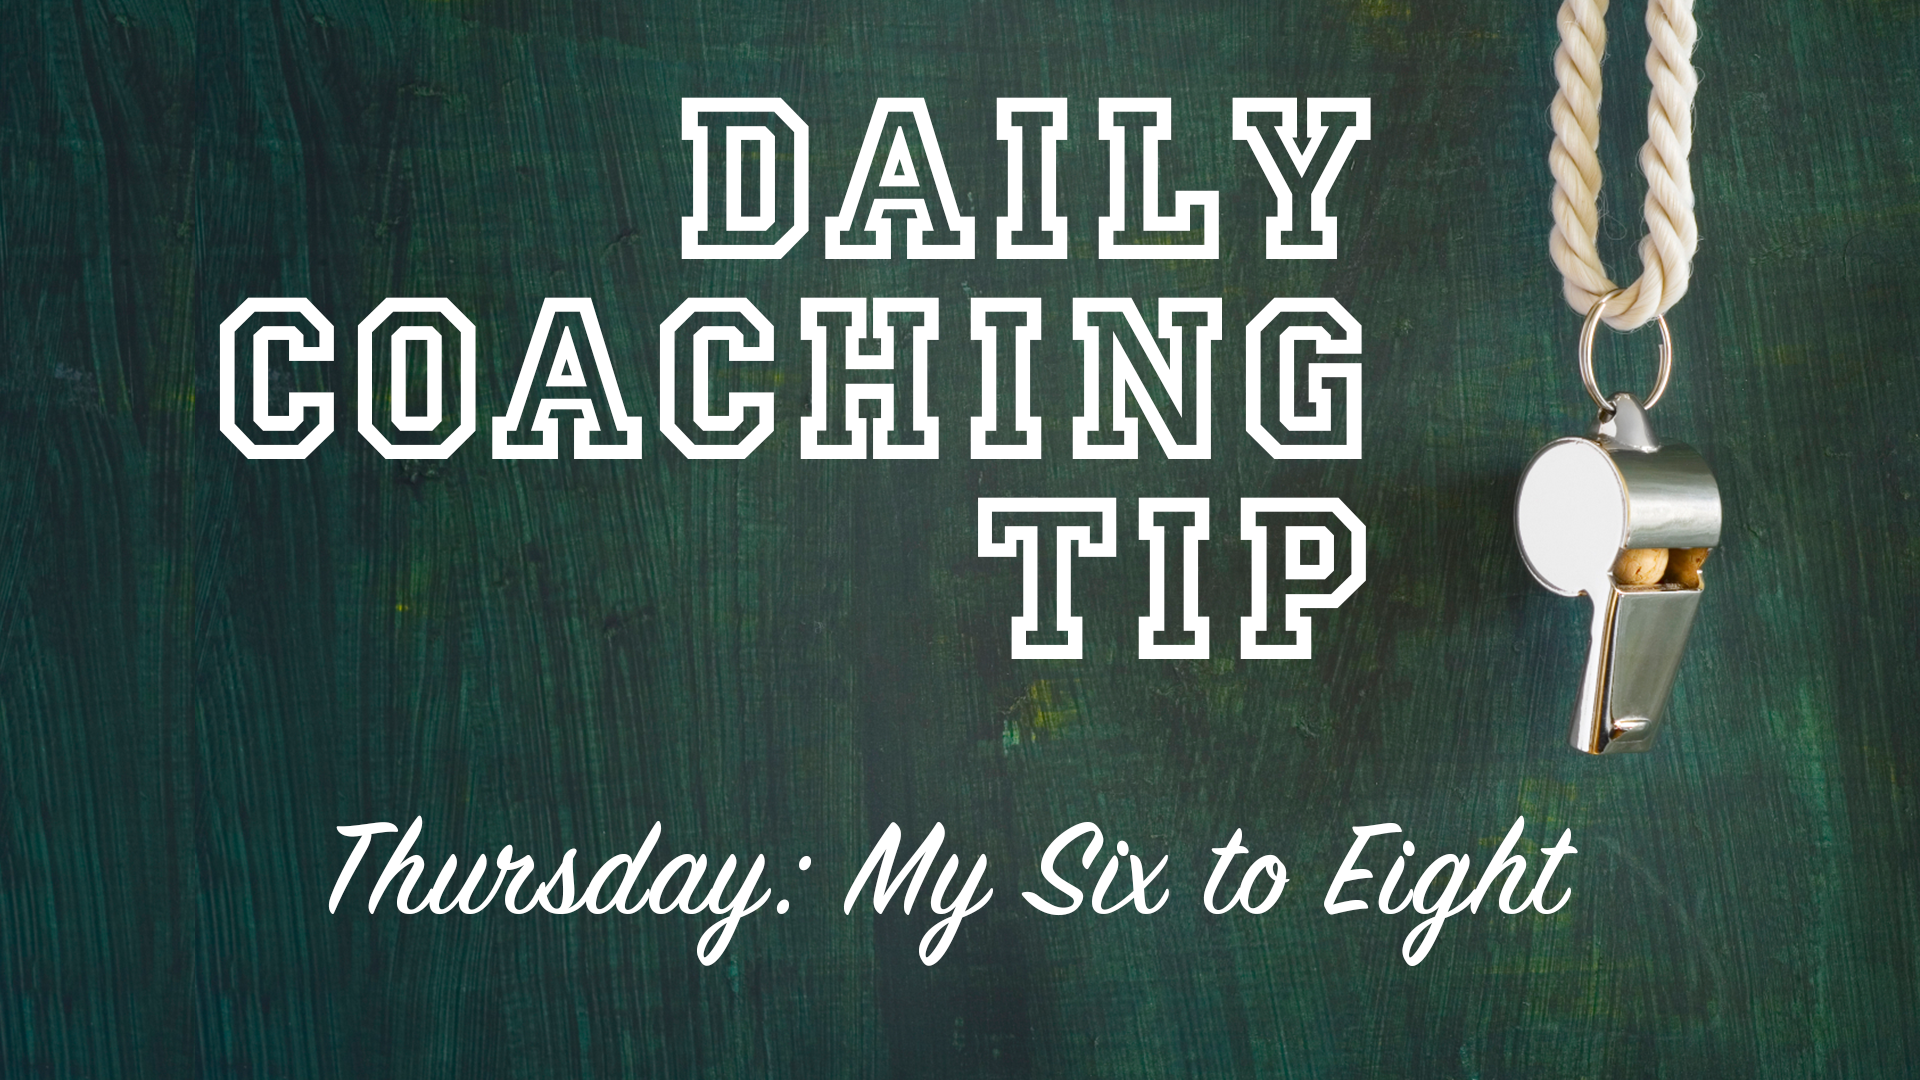 Daily Coaching Tip, Thursday, May 26, 2016